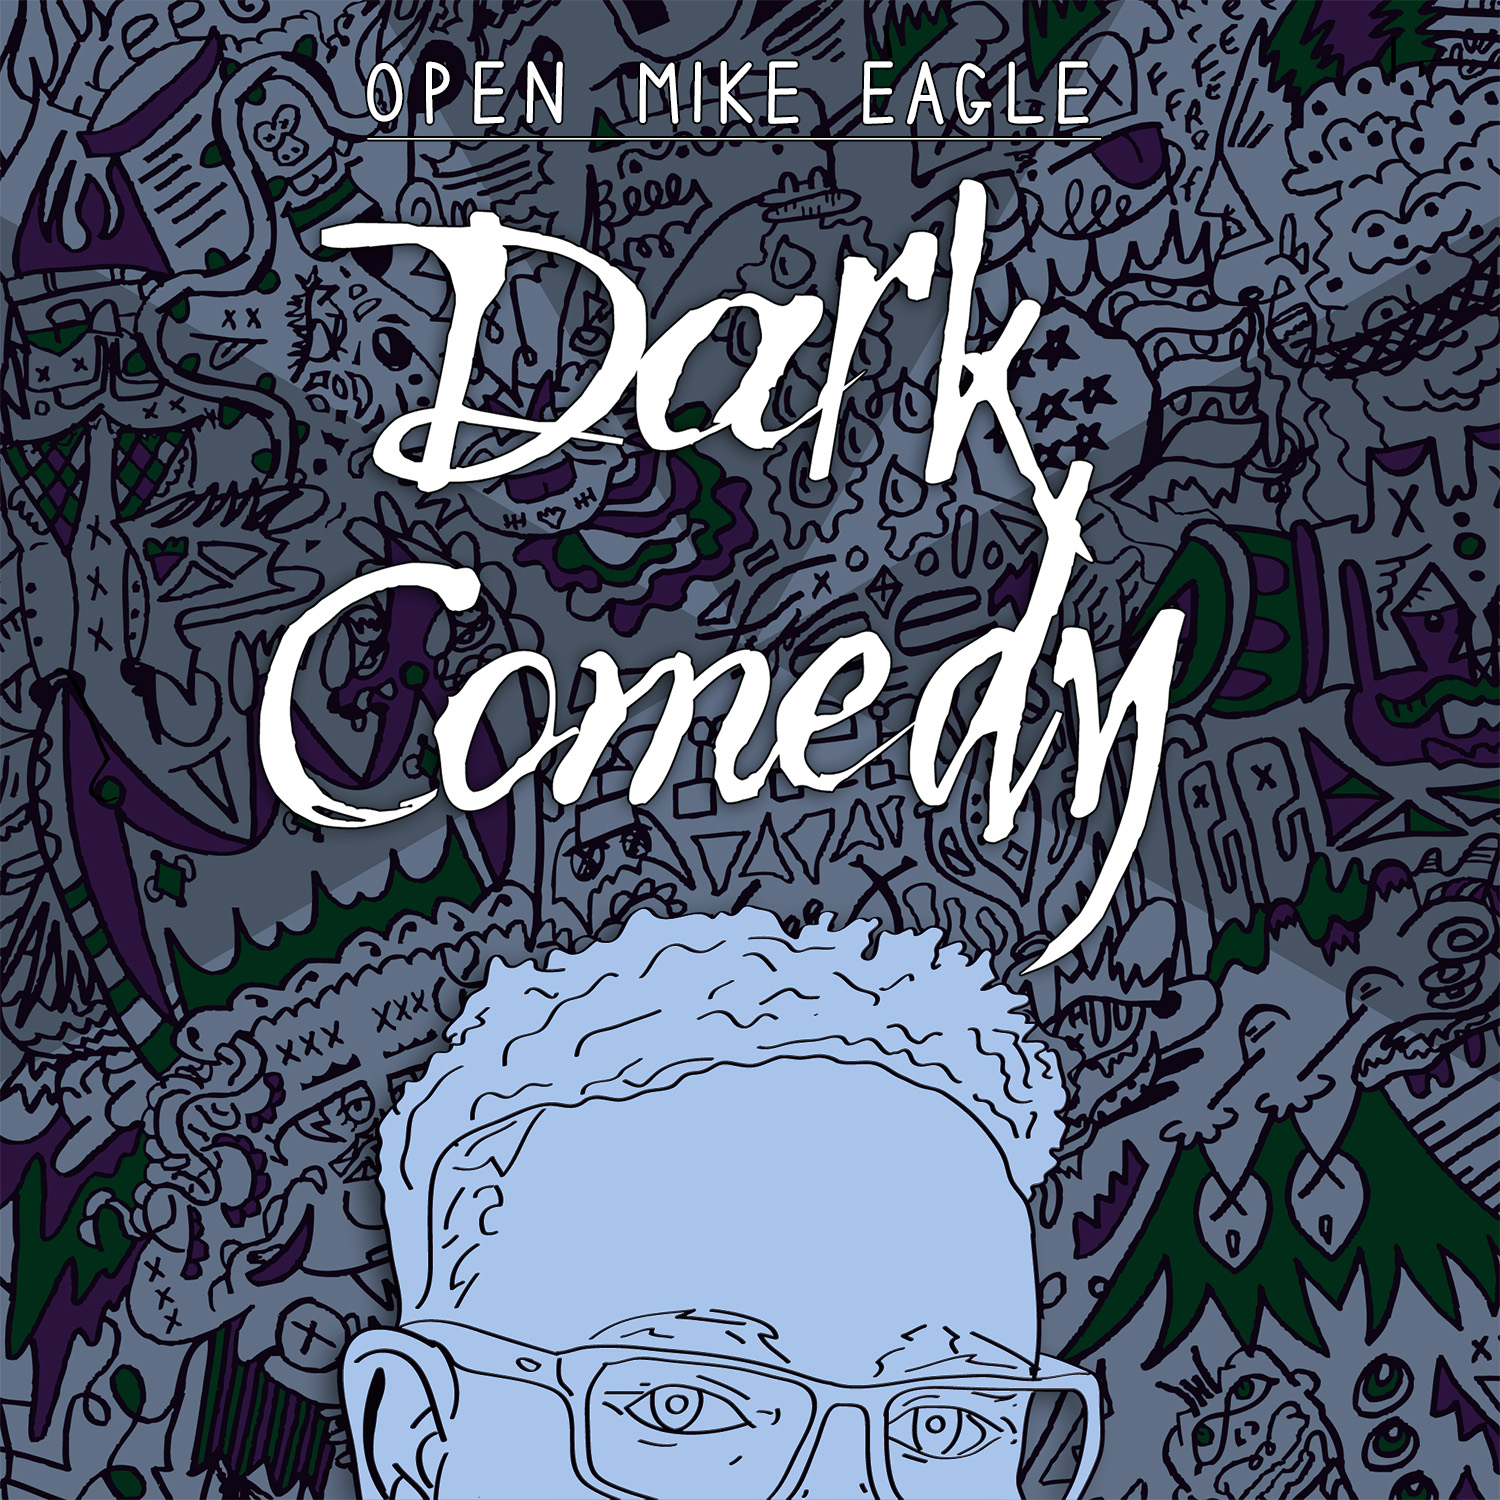 https://s3.amazonaws.com/vice_asset_uploader/files/1397572812OpenMike_DarkComedyCover_1500x1500.jpg